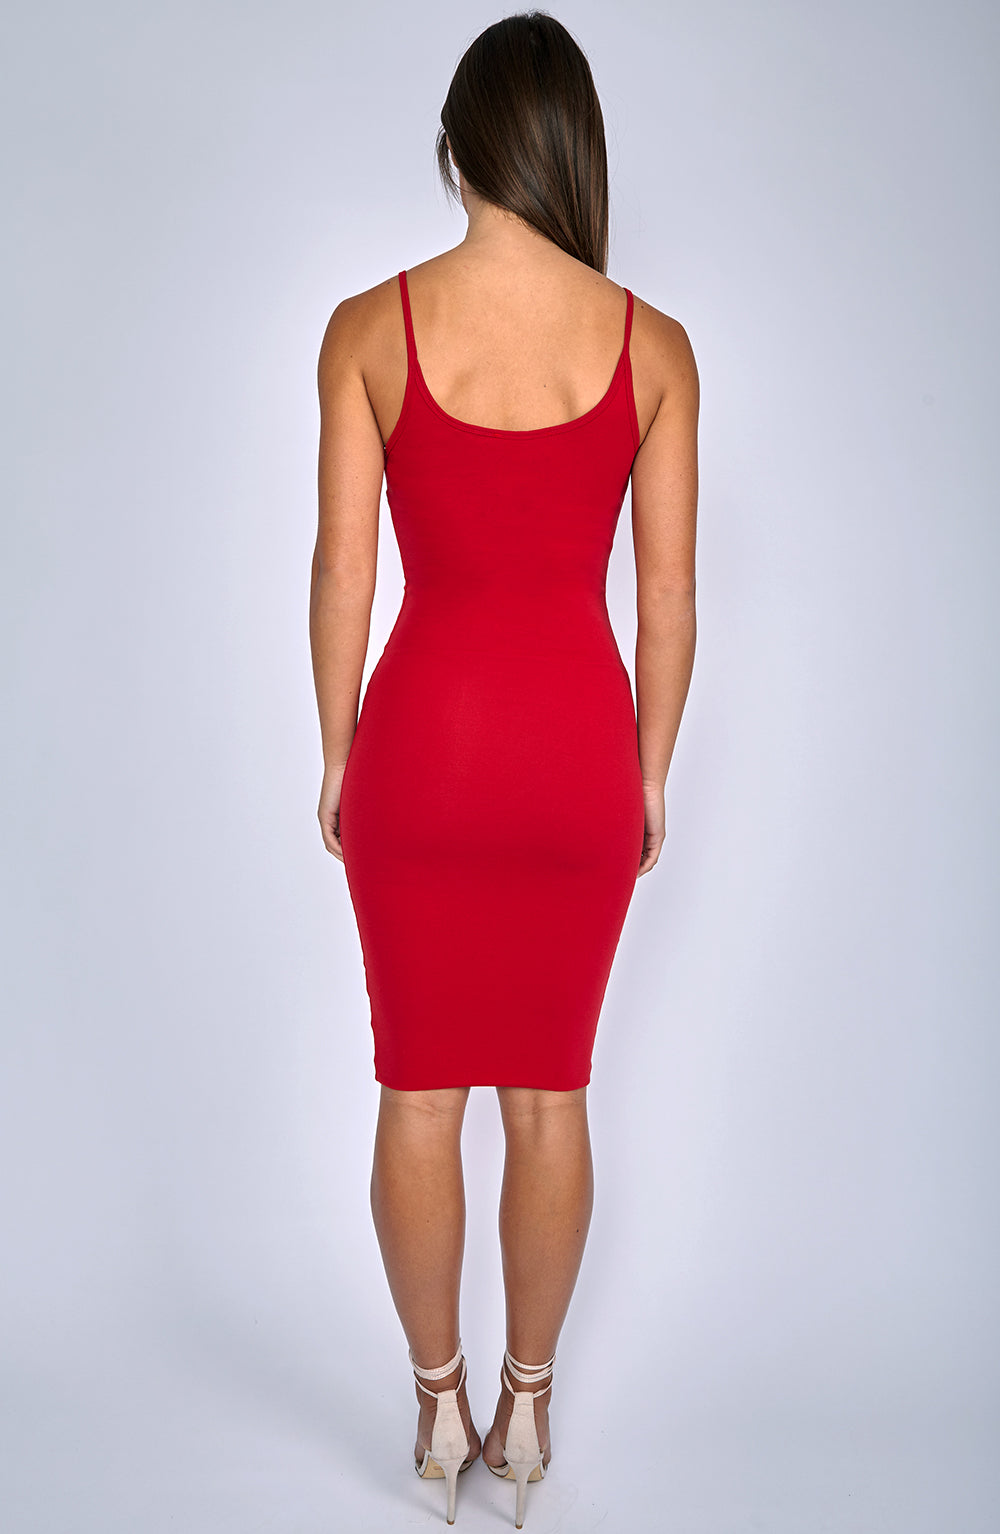 Zaphire Dress - Red